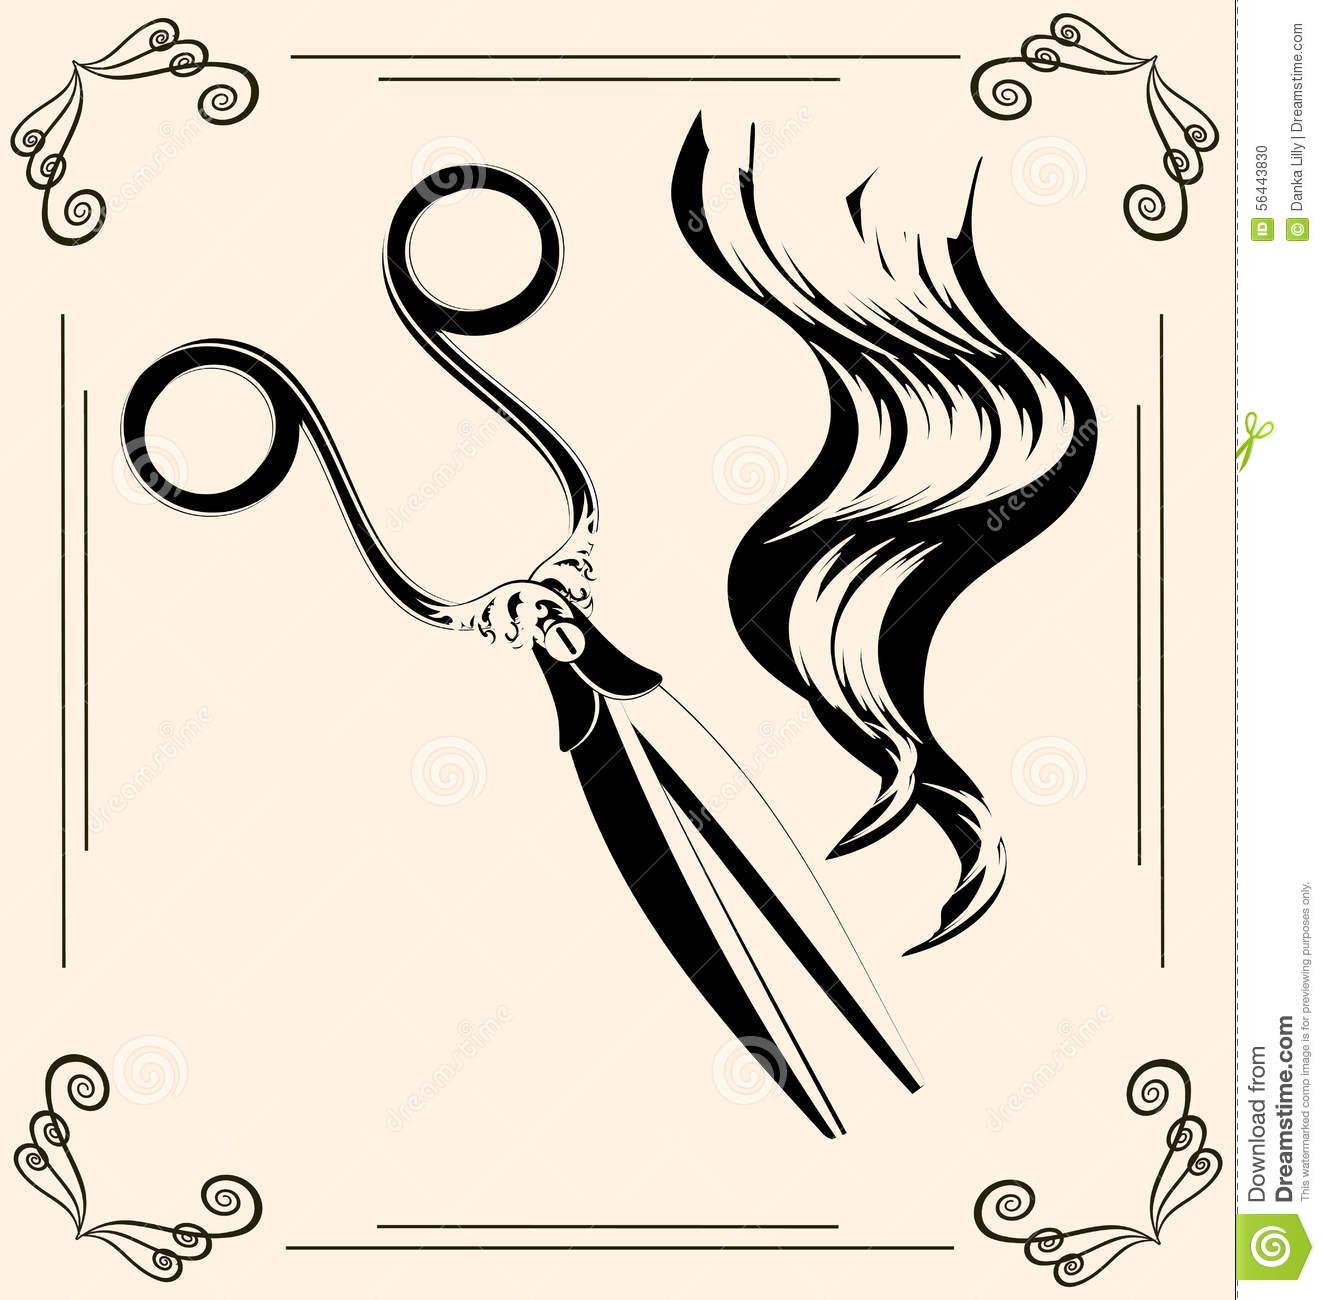 Black outlines of womans hair and vintage scissors.